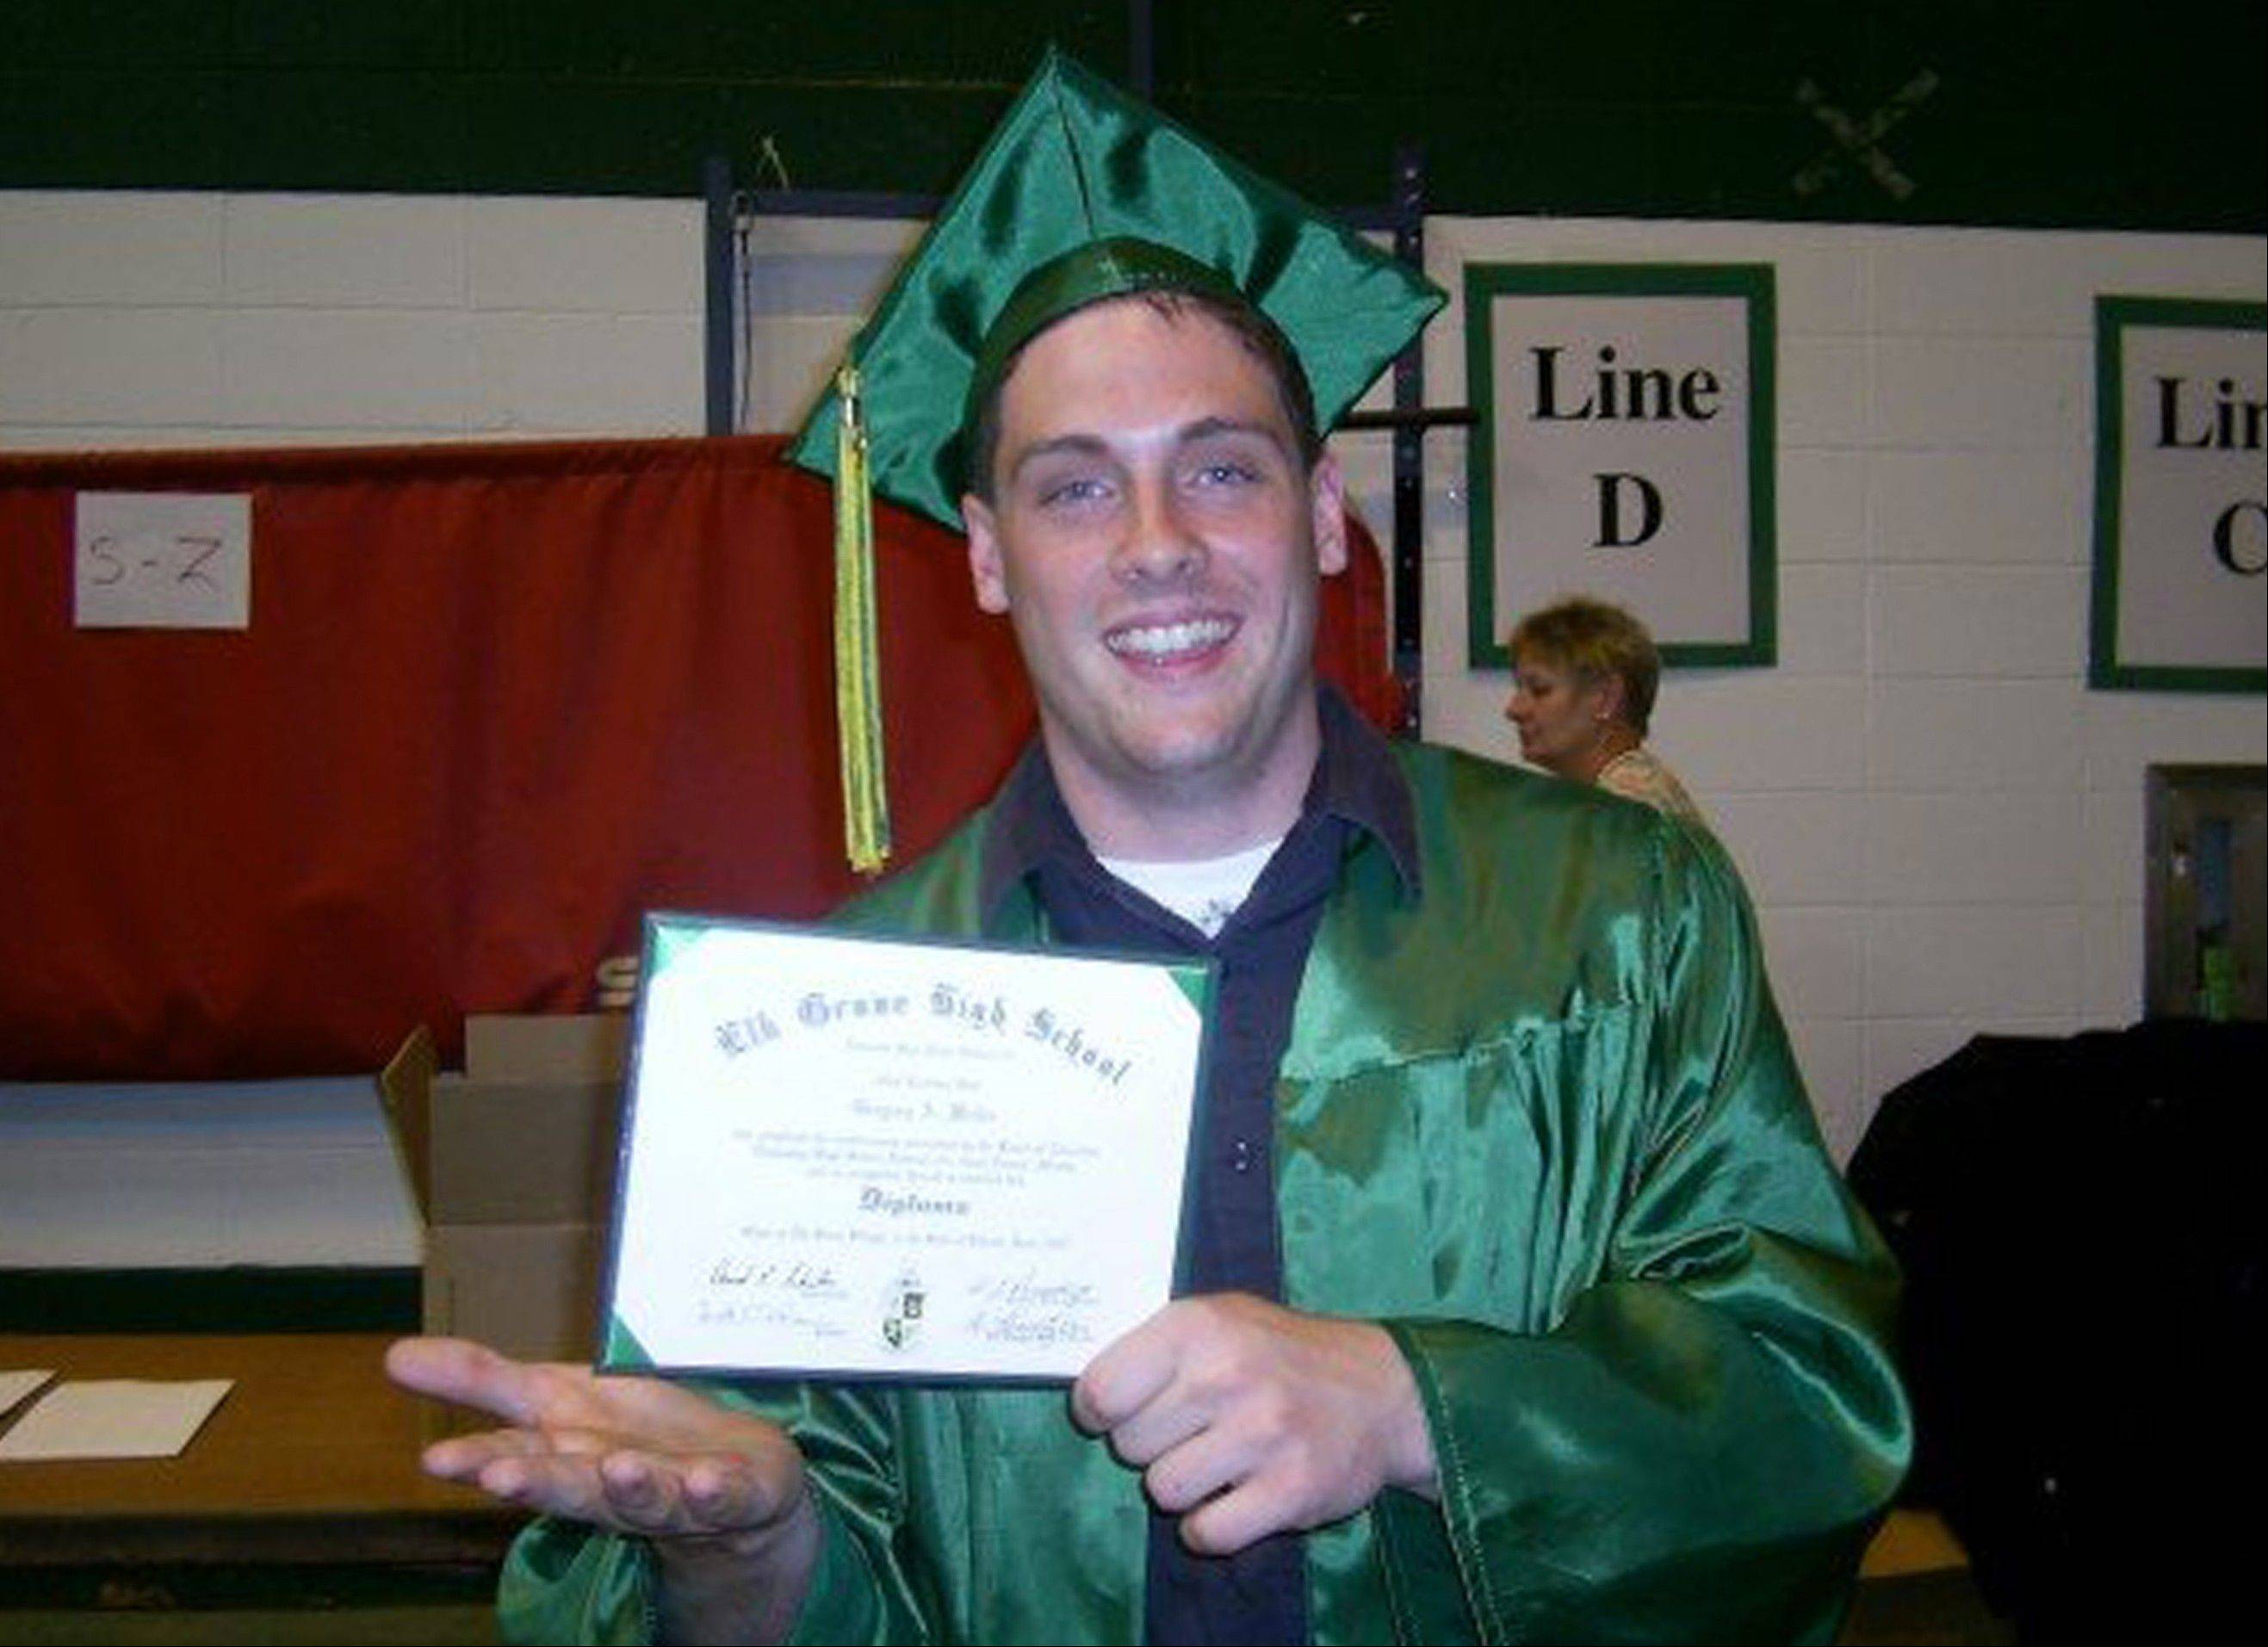 This June 2007 family photo provided by the Weiler/Meyers family shows, Greg Weiler at his high school graduation from Elk Grove High School, in Elk Grove Village, Ill. Wieler who has a a long history of mental illness has been charged with plotting to attack dozens of churches in Oklahoma with homemade Molotov cocktails. Weiler's parents both committed suicide, and Weiler has battled drug addiction and ìa lot of mental illnesses that led to a suicide attempt in the eighth grade, said his cousin Johnny Meyers. Meyers' parents served as legal guardians for Weiler after the death of his parents. He said family members in suburban Chicago believe Weiler must have stopped taking his medication and planned to go to Oklahoma to see him.